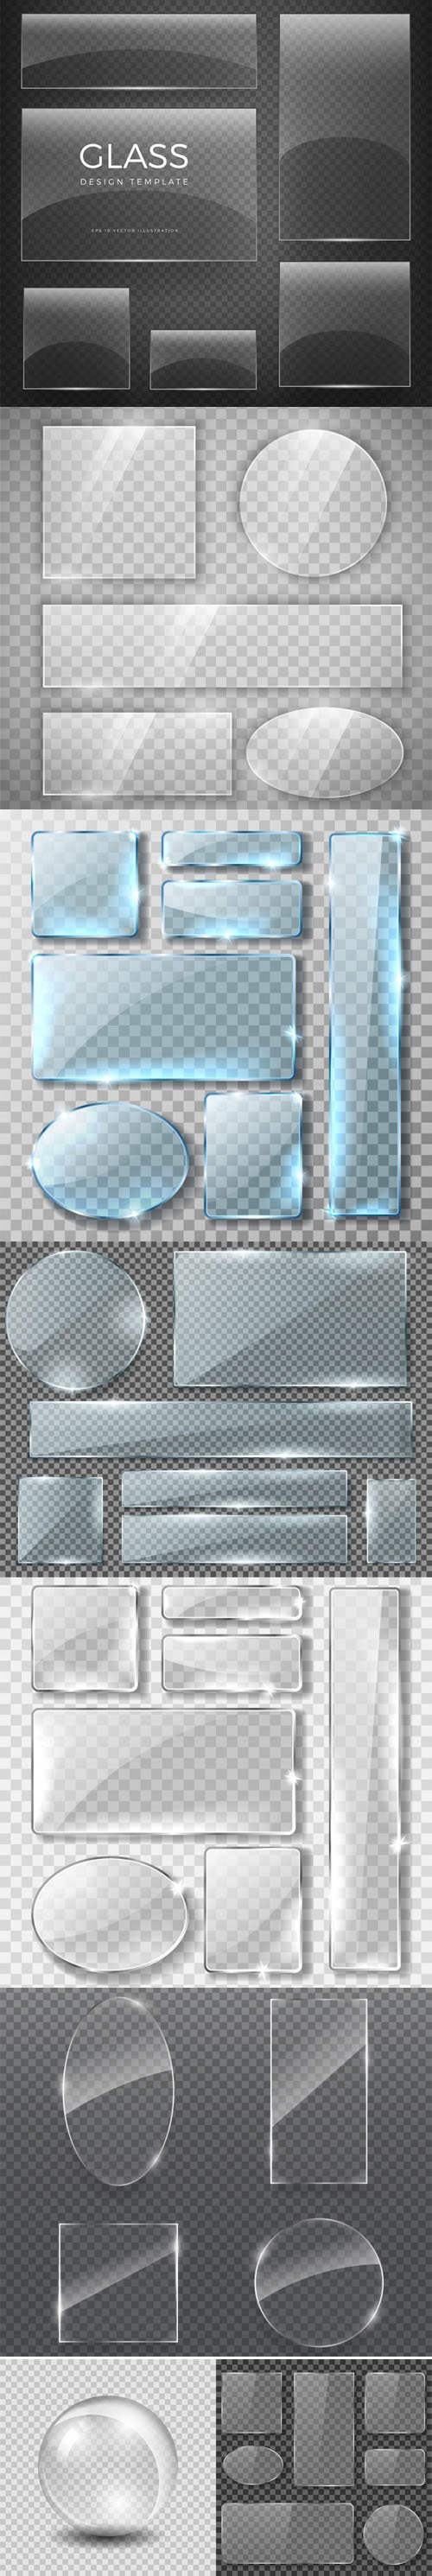 Realistic Transparent Glass Glossy Different Shapes in Vector